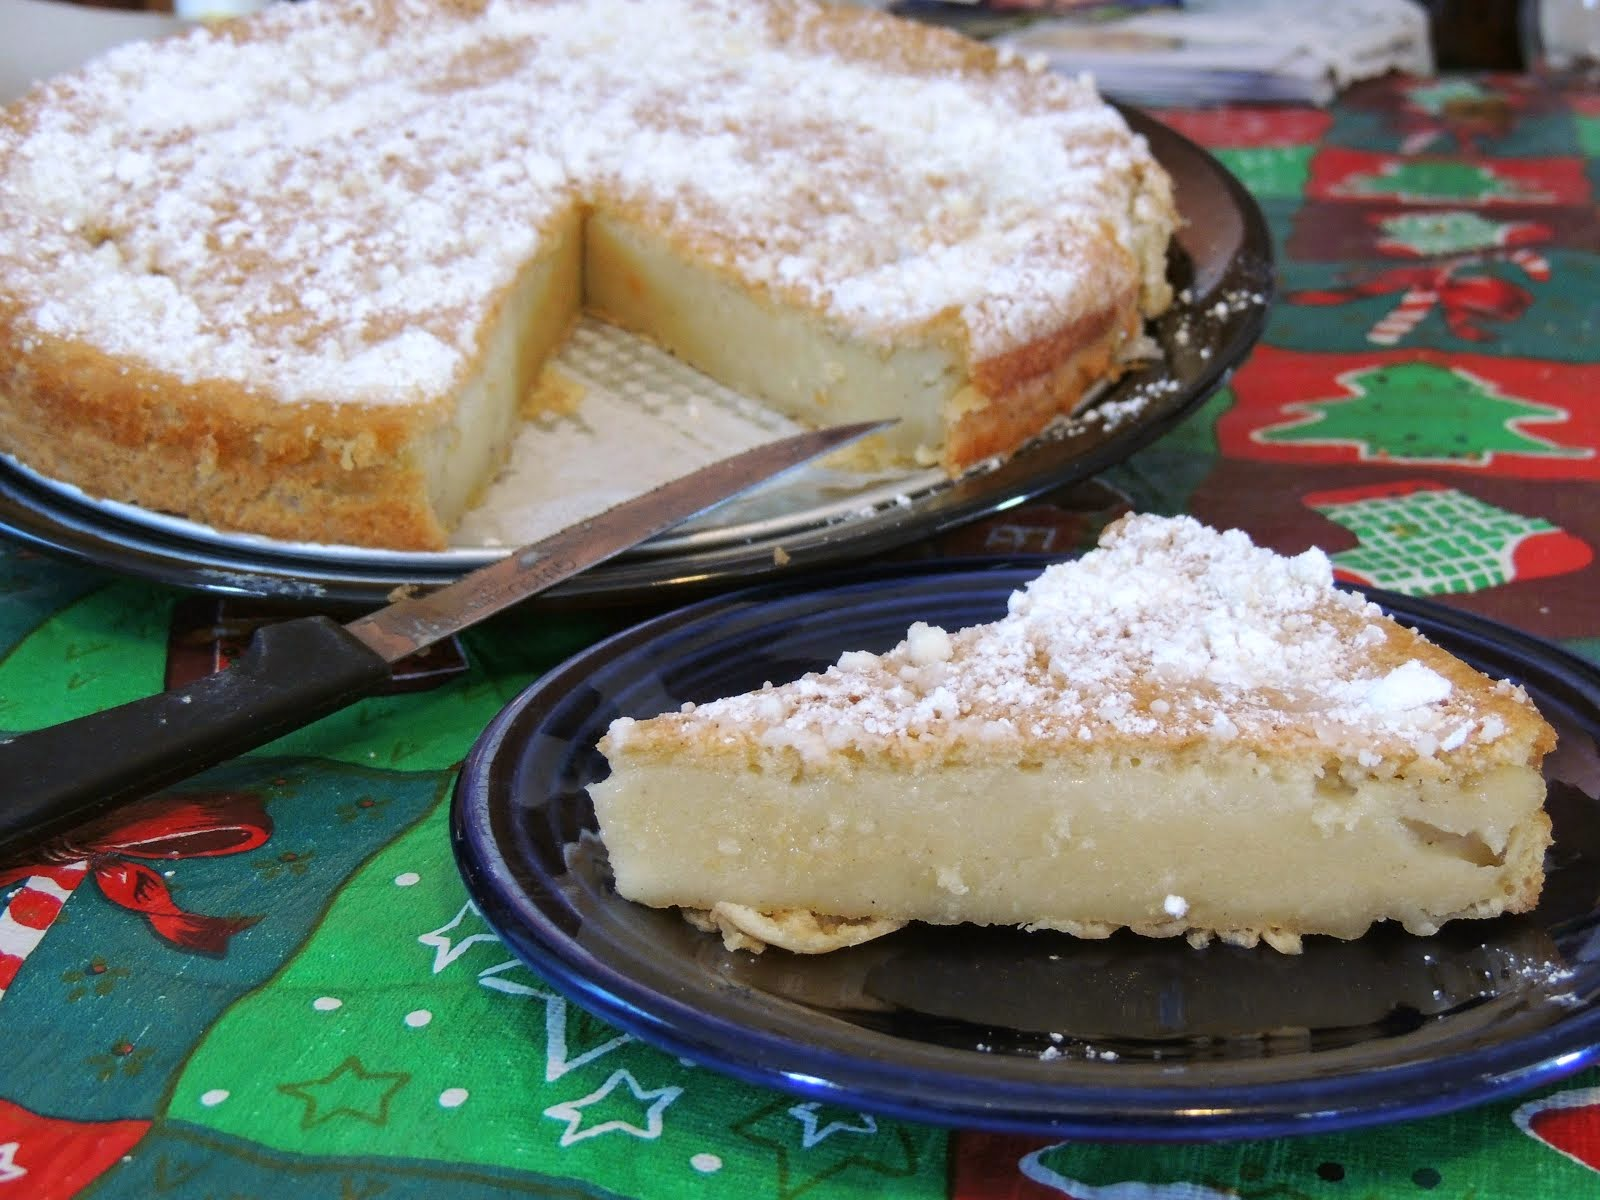 http://angelgirlpj.blogspot.com/2015/02/gluten-free-magic-custard-cake.html